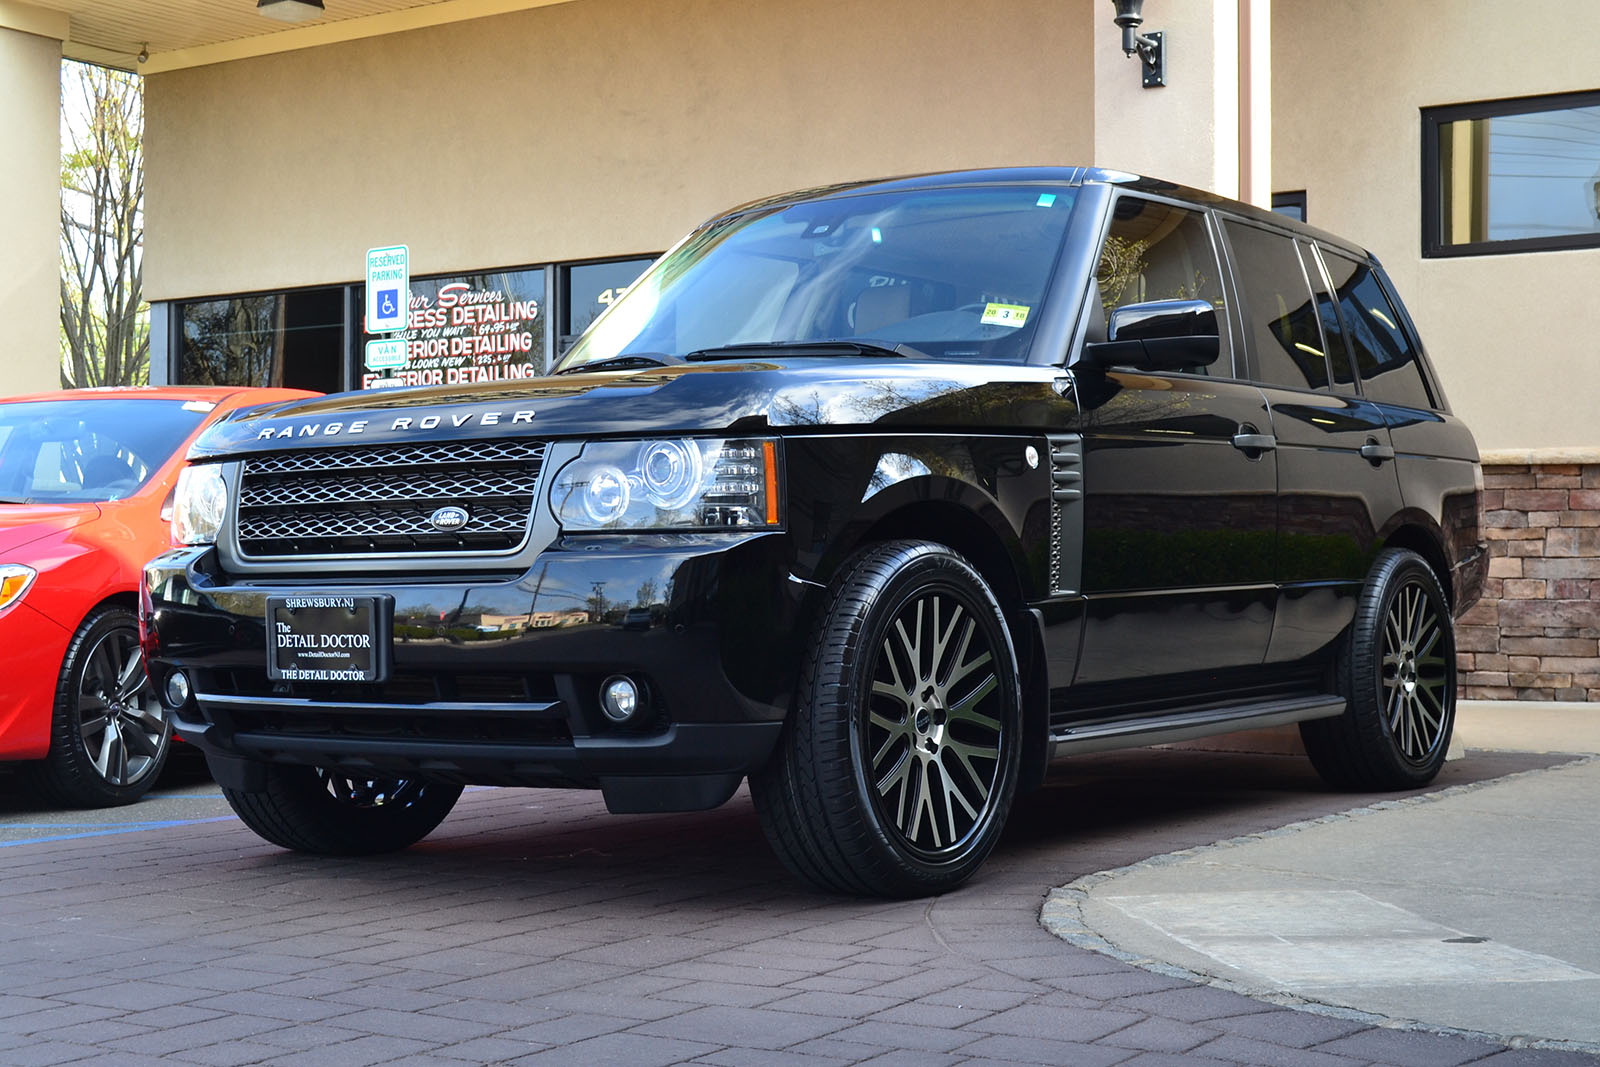 2011 Land Rover Range Rover Hse Pre Owned